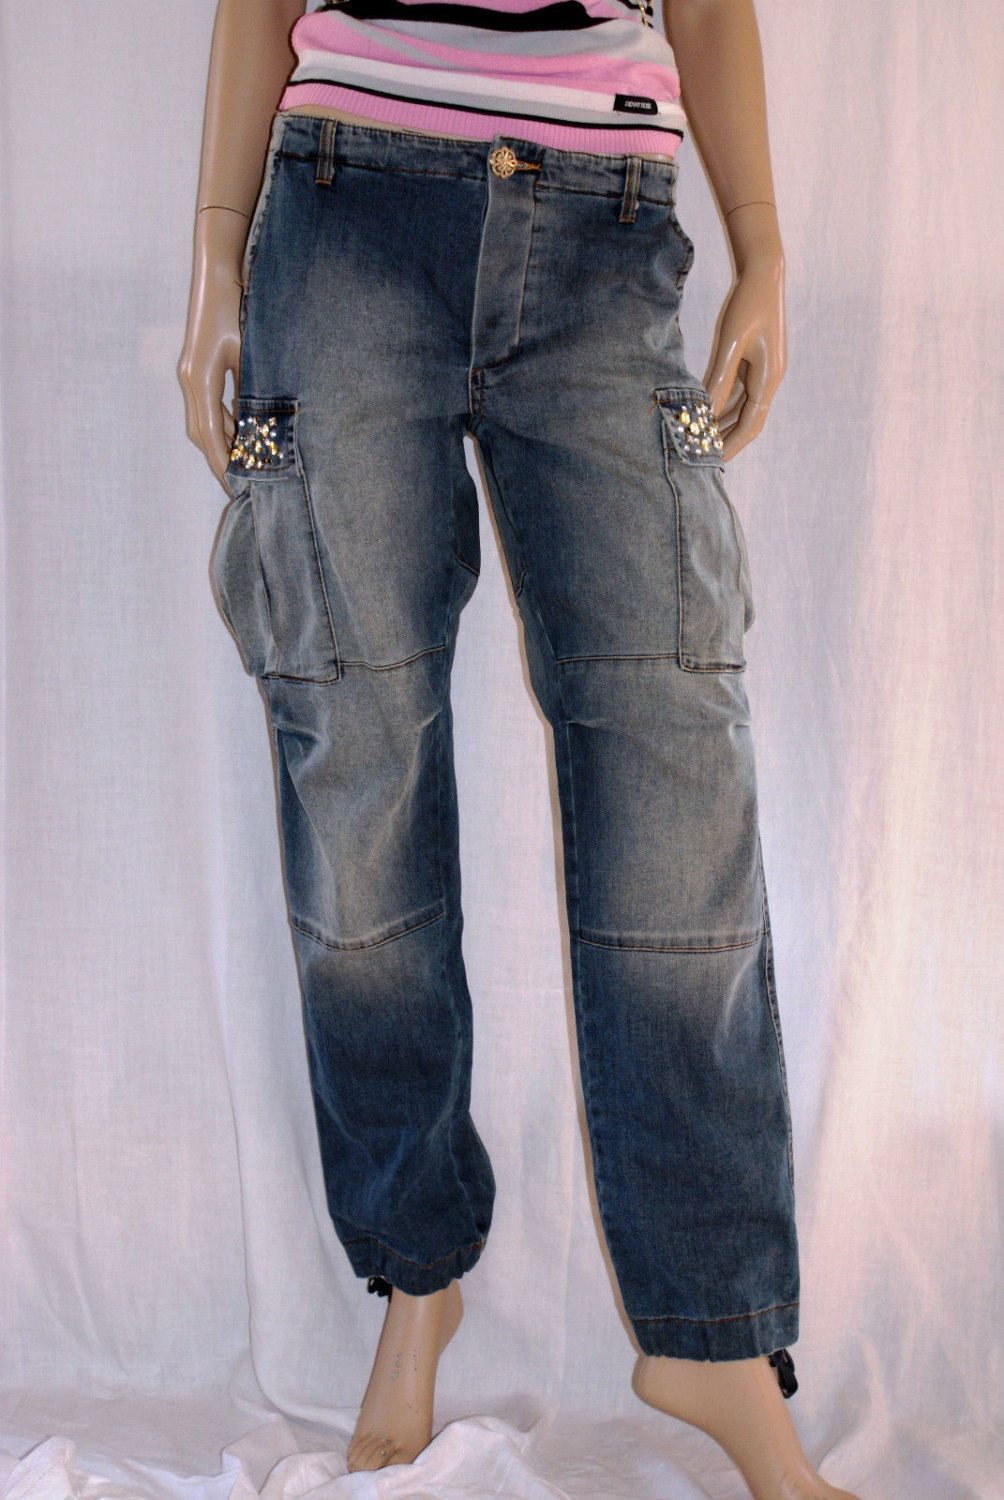 e3c61fac59 Gorgeous Vintage Cargo Jeans Denny Rose Strass Adorned Perfect Condition  Size S Donna Cargo Jeans Taglia S Con Strass Perfette Condizioni di  BeHappieWorld ...